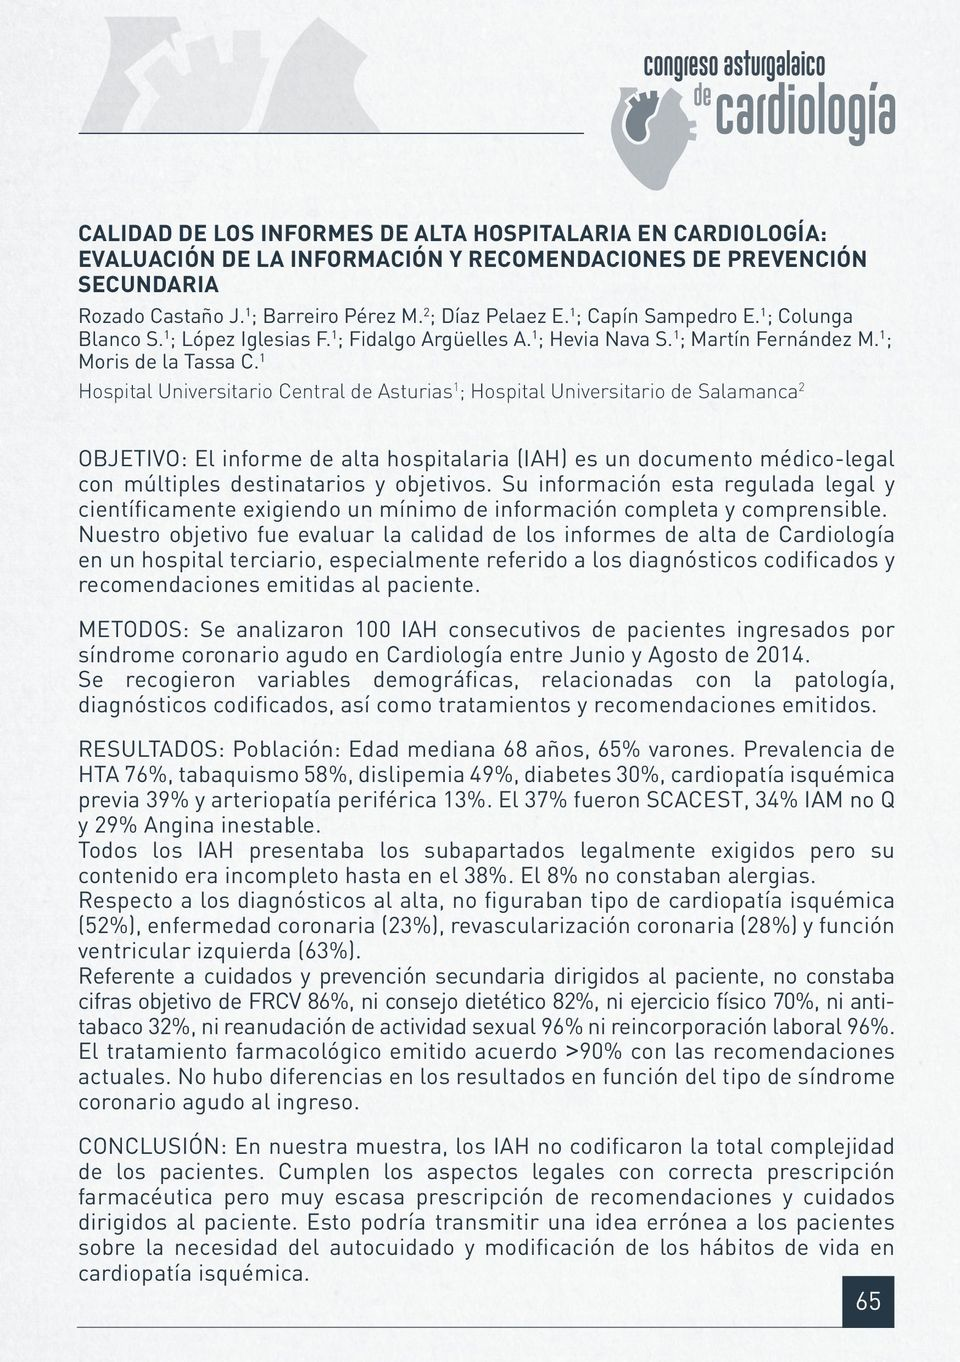 1 Hospital Universitario Central de Asturias 1 ; Hospital Universitario de Salamanca 2 OBJETIVO: El informe de alta hospitalaria (IAH) es un documento médico-legal con múltiples destinatarios y